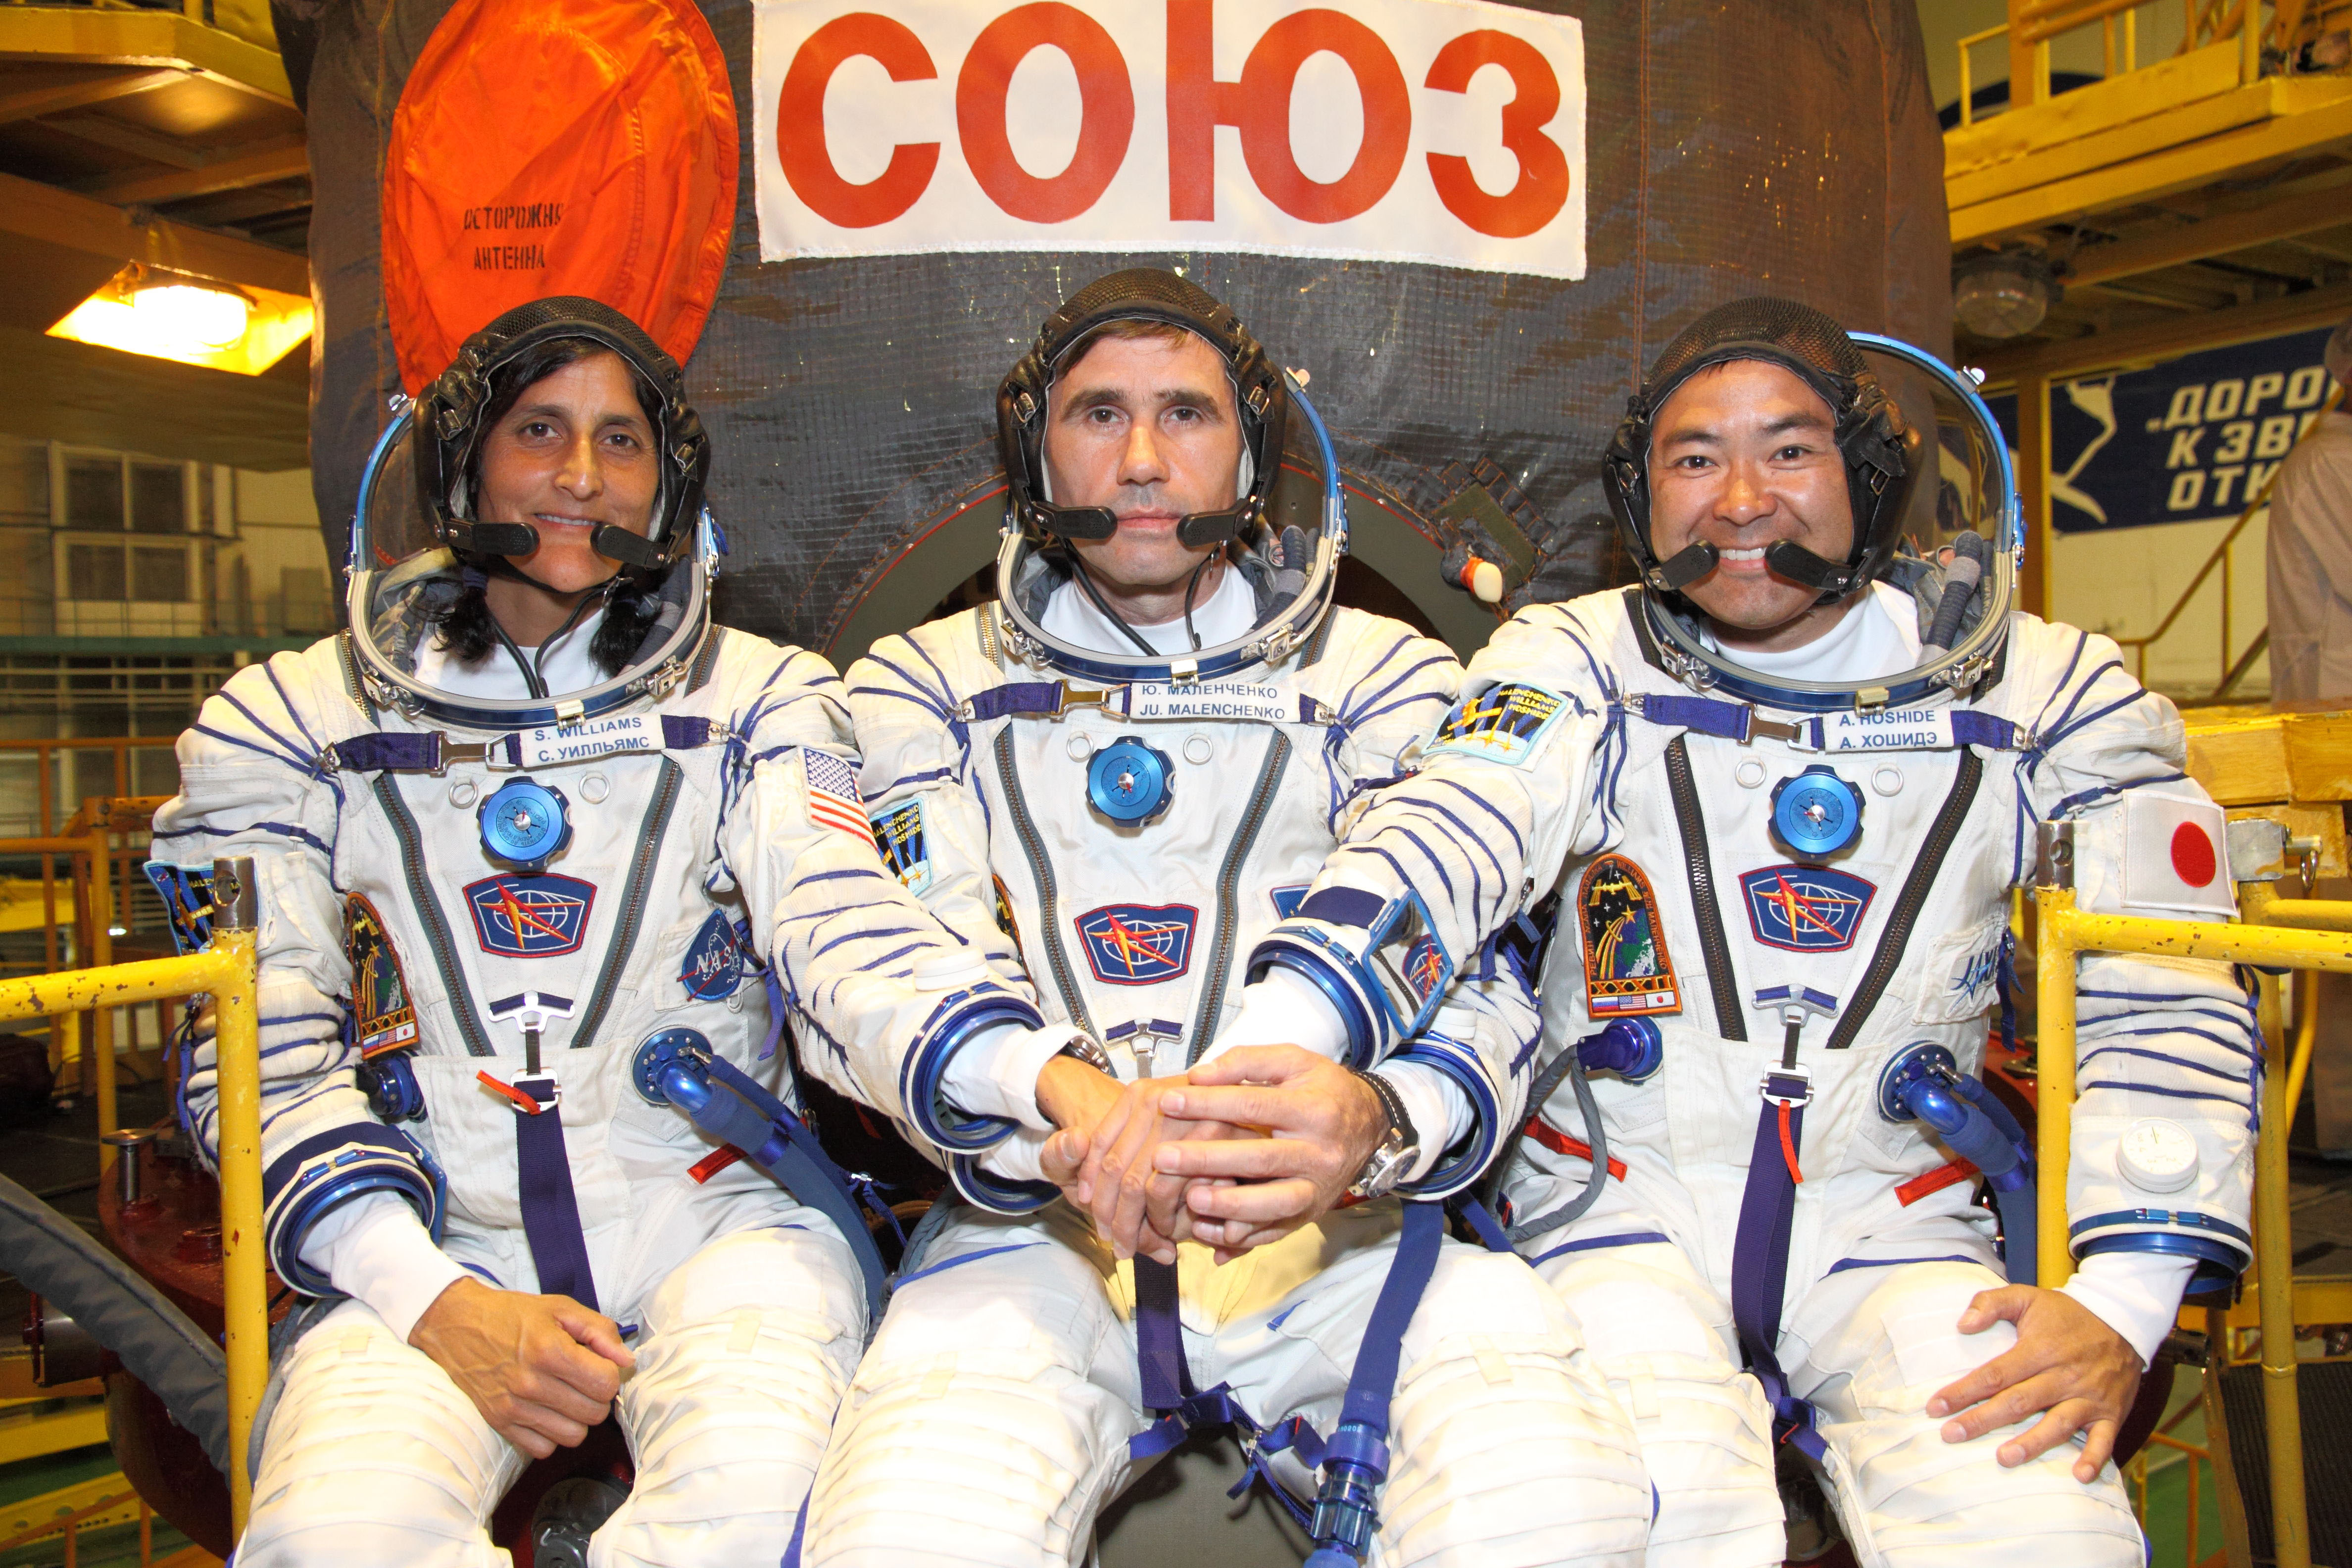 Suited up in Front of Soyuz